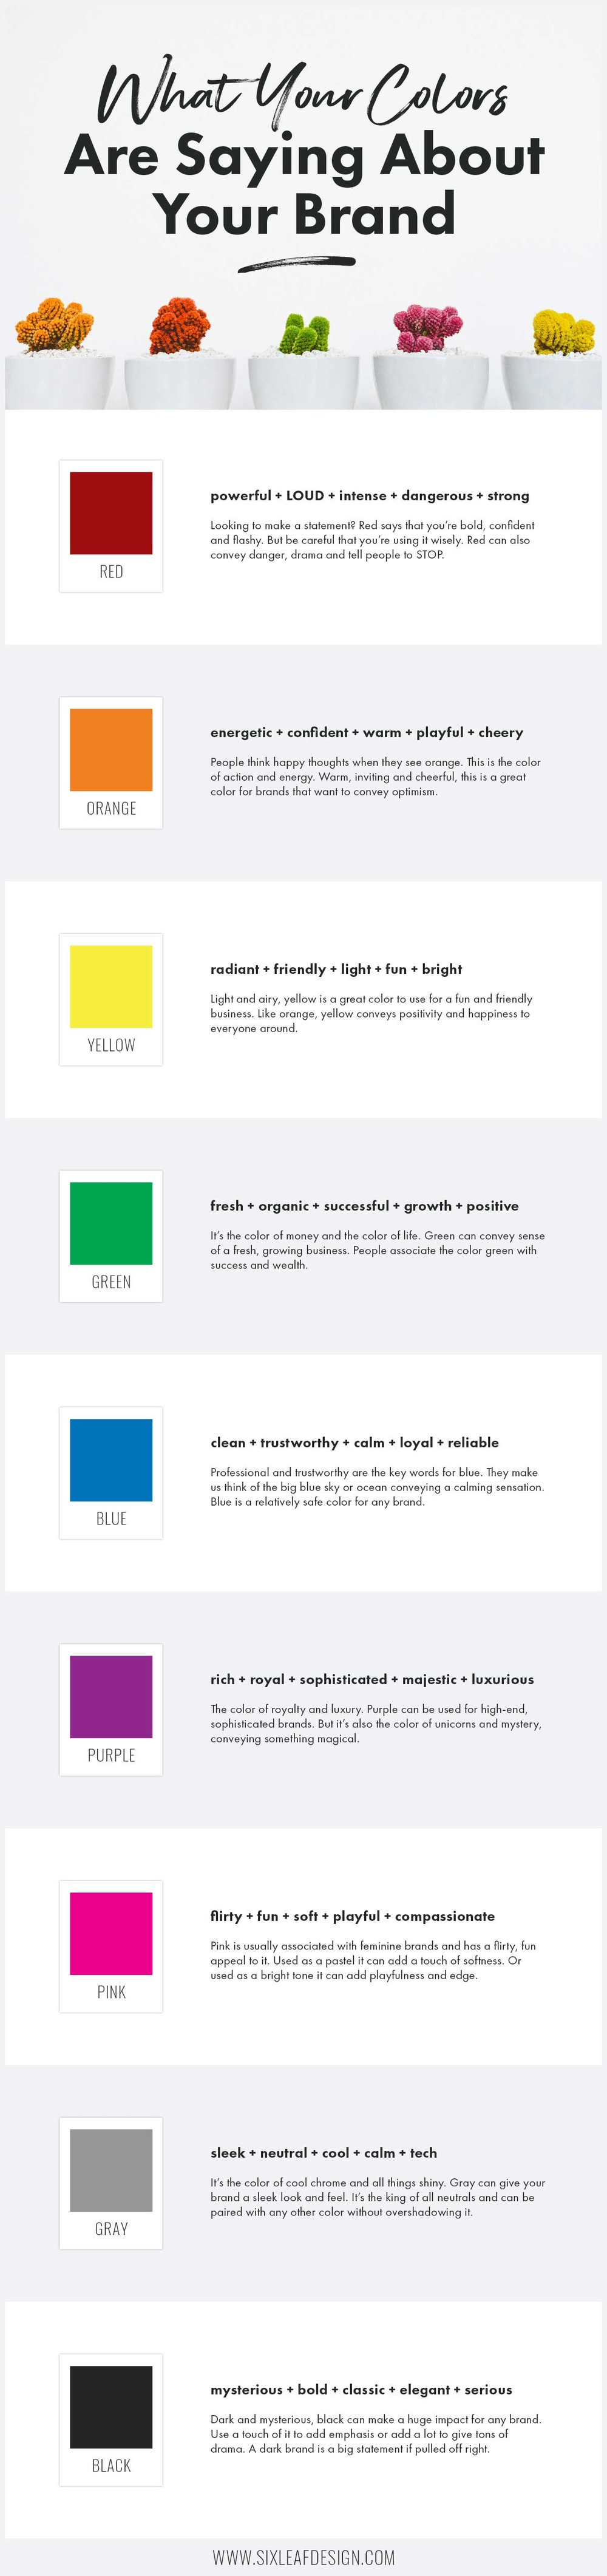 What Your Colors Are Saying About Your Brand Infographic   Choosing The Right Colors For Your Brand Infographic